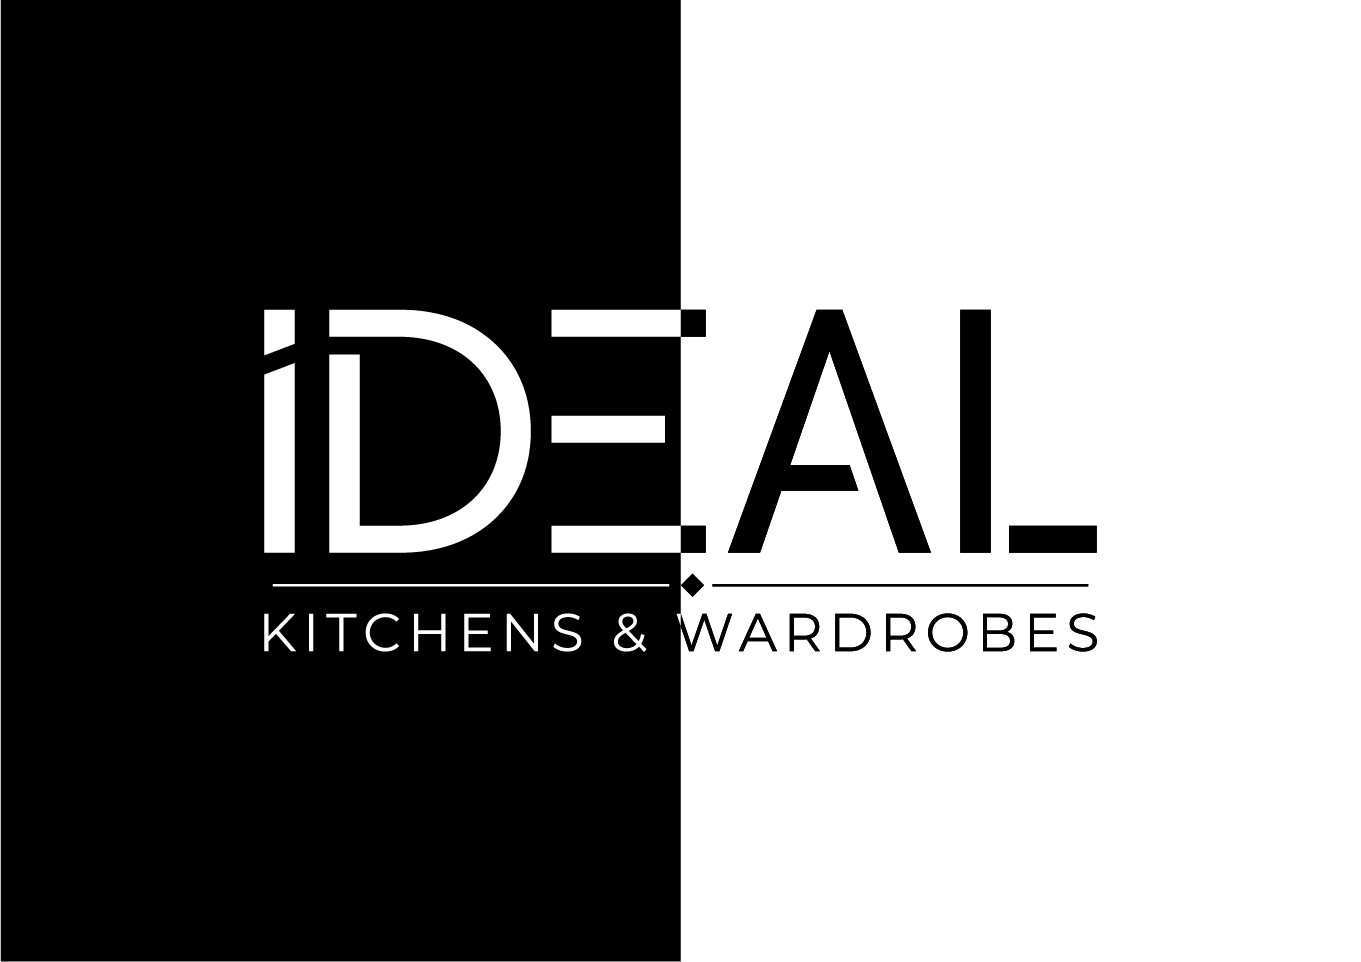 Black and white logo design for Ideal Kitchens & Wardrobes